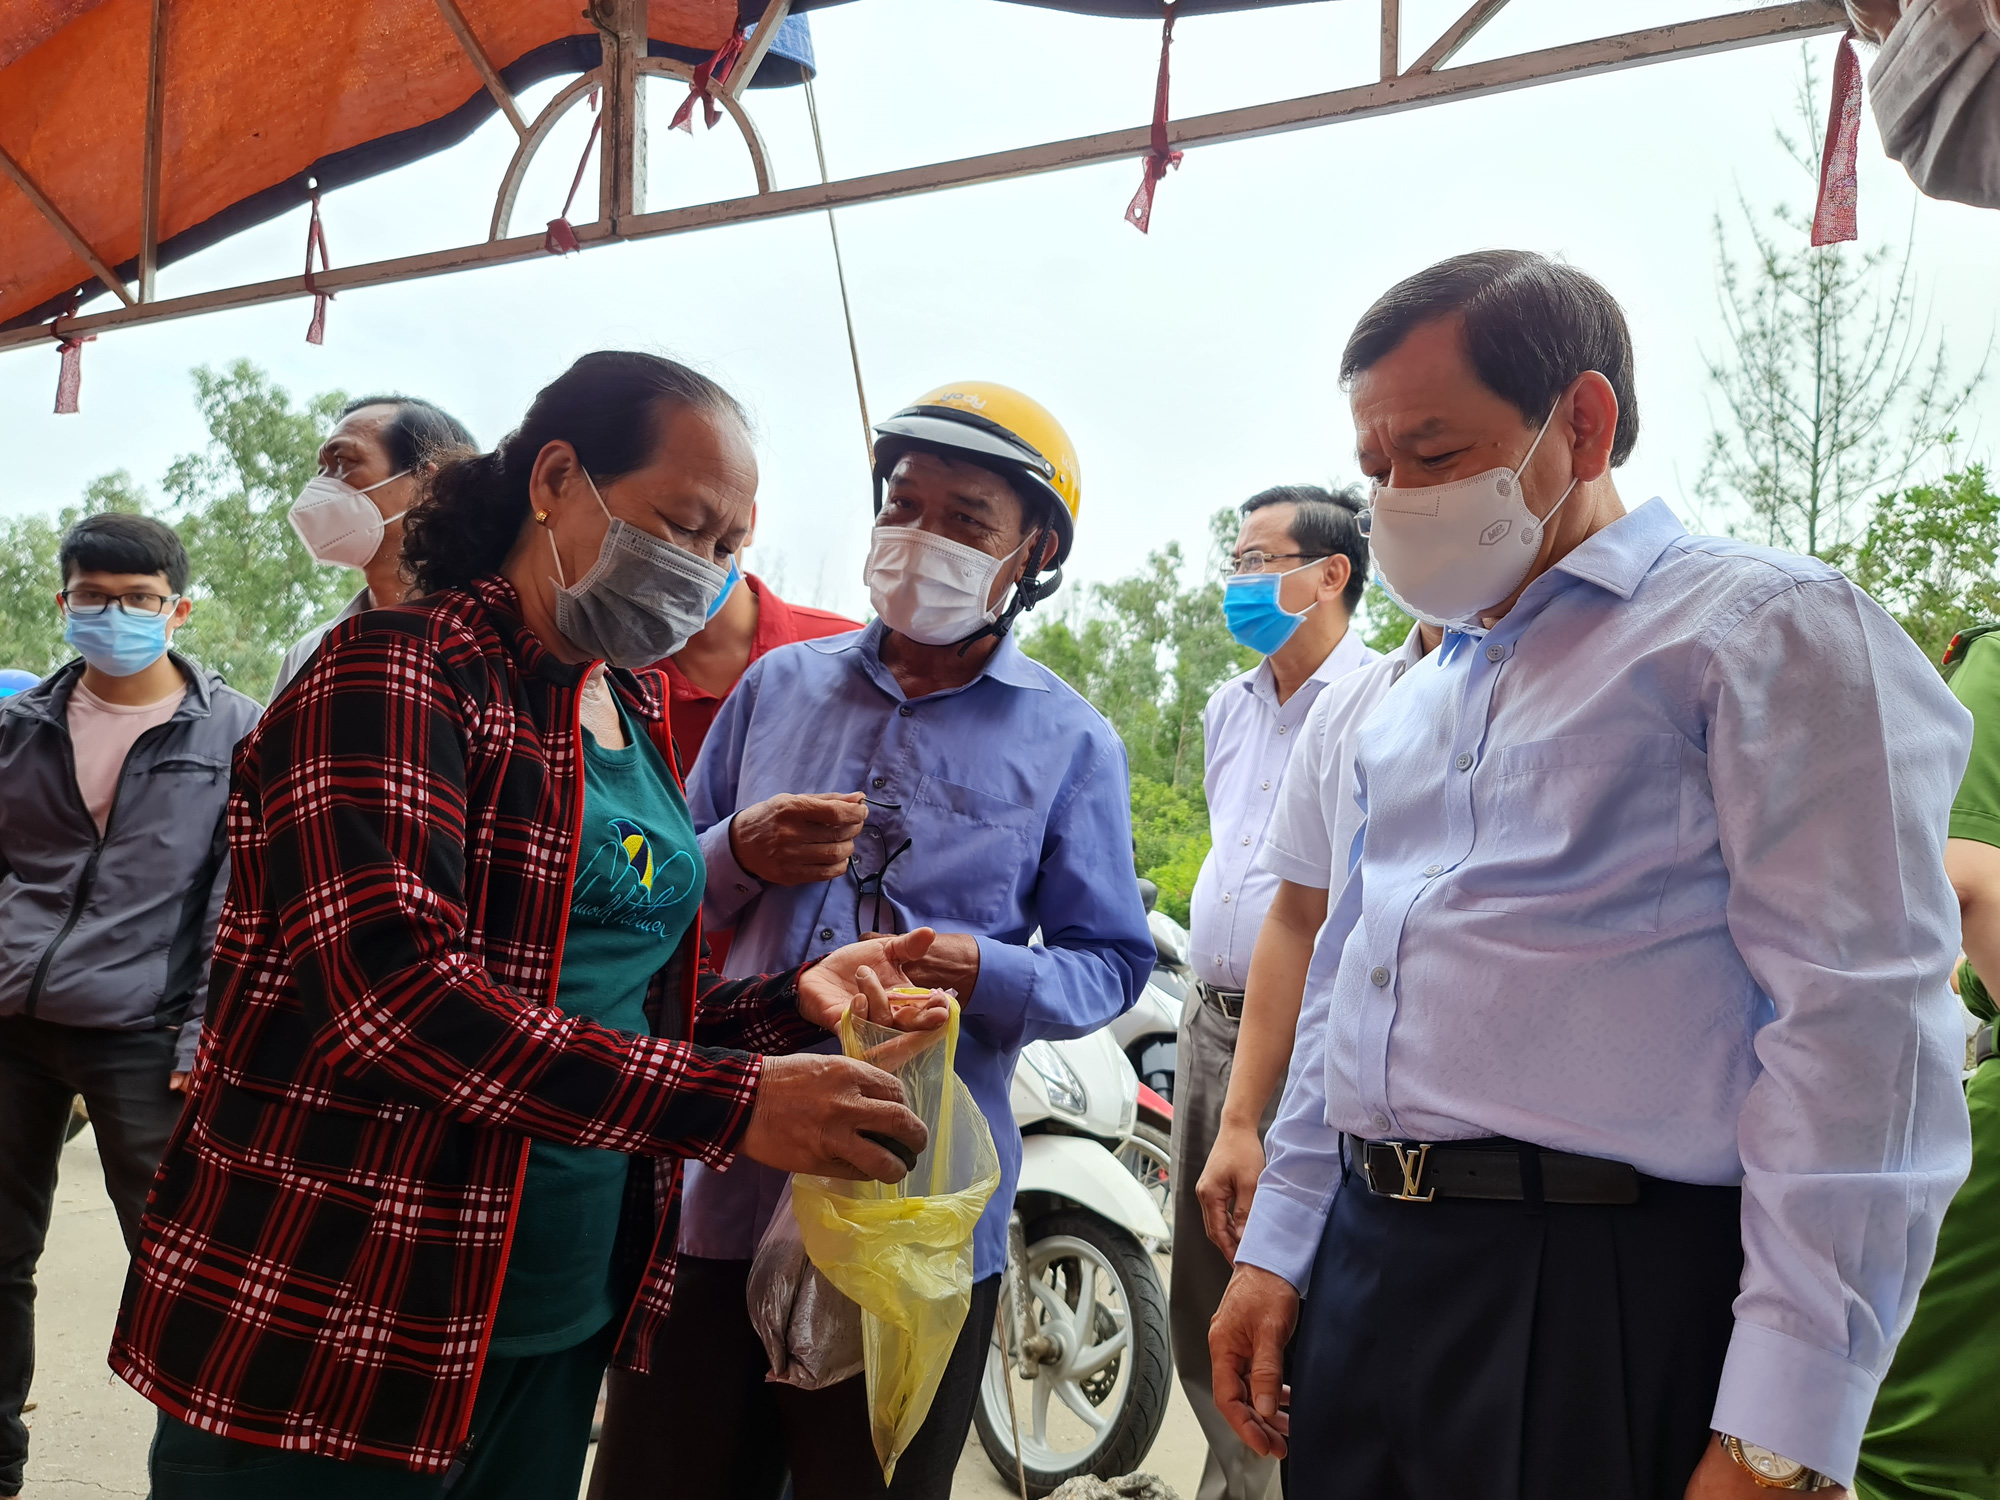 Chairman of the Quang Ngai People's Committee Dang Van Minh meet with local residents on June 12, 2021. Photo: Tran Mai / Tuoi Tre